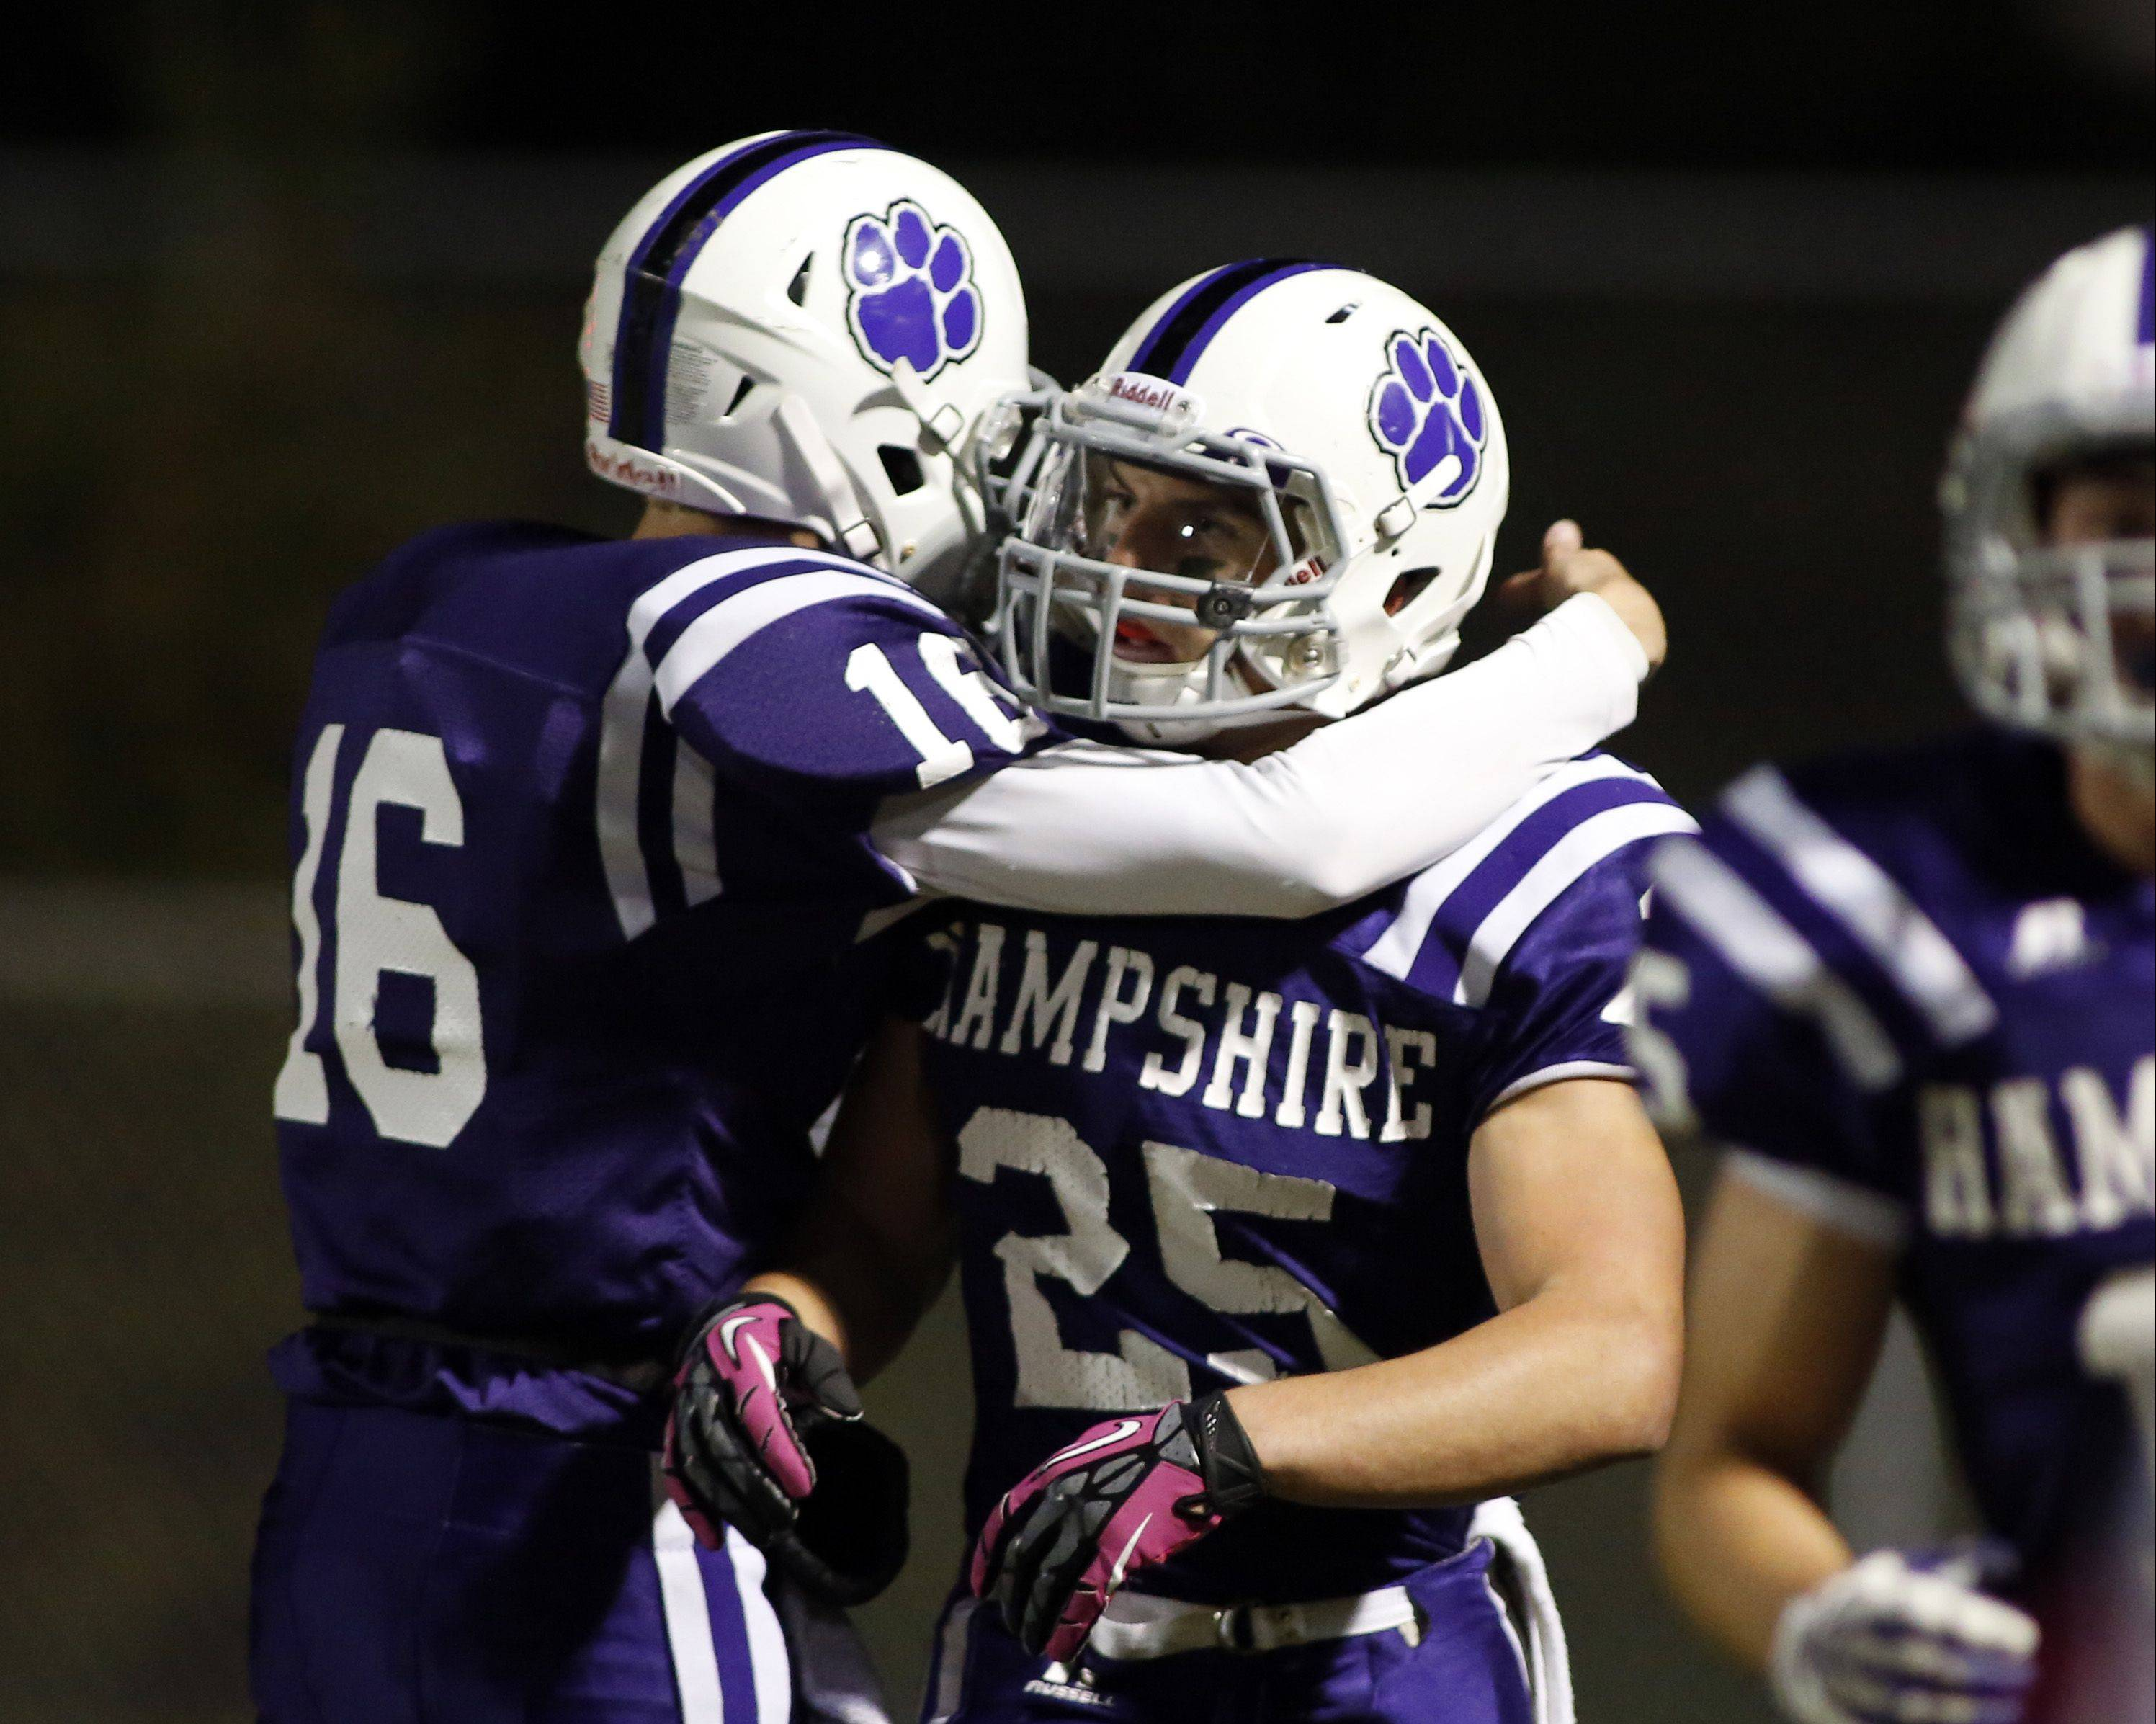 Hampshire's Nick Mohlman, left, greets teammate Nick Kielbasa after a touchdown Friday night during the Whip-Purs' win over Johnsburg.